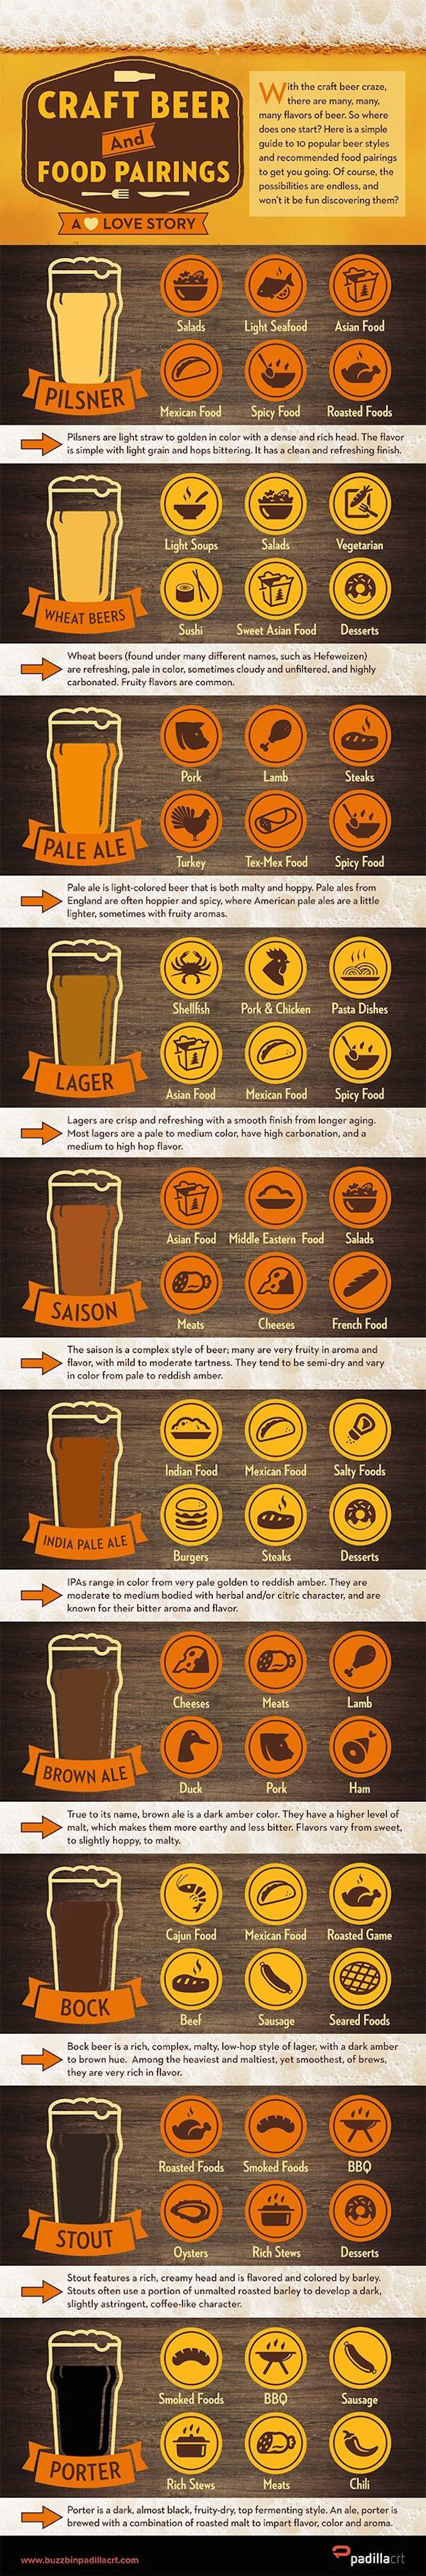 Here's A Handy Chart Explaining The Craft Beer That Pairs Best With Your Favorite Foods